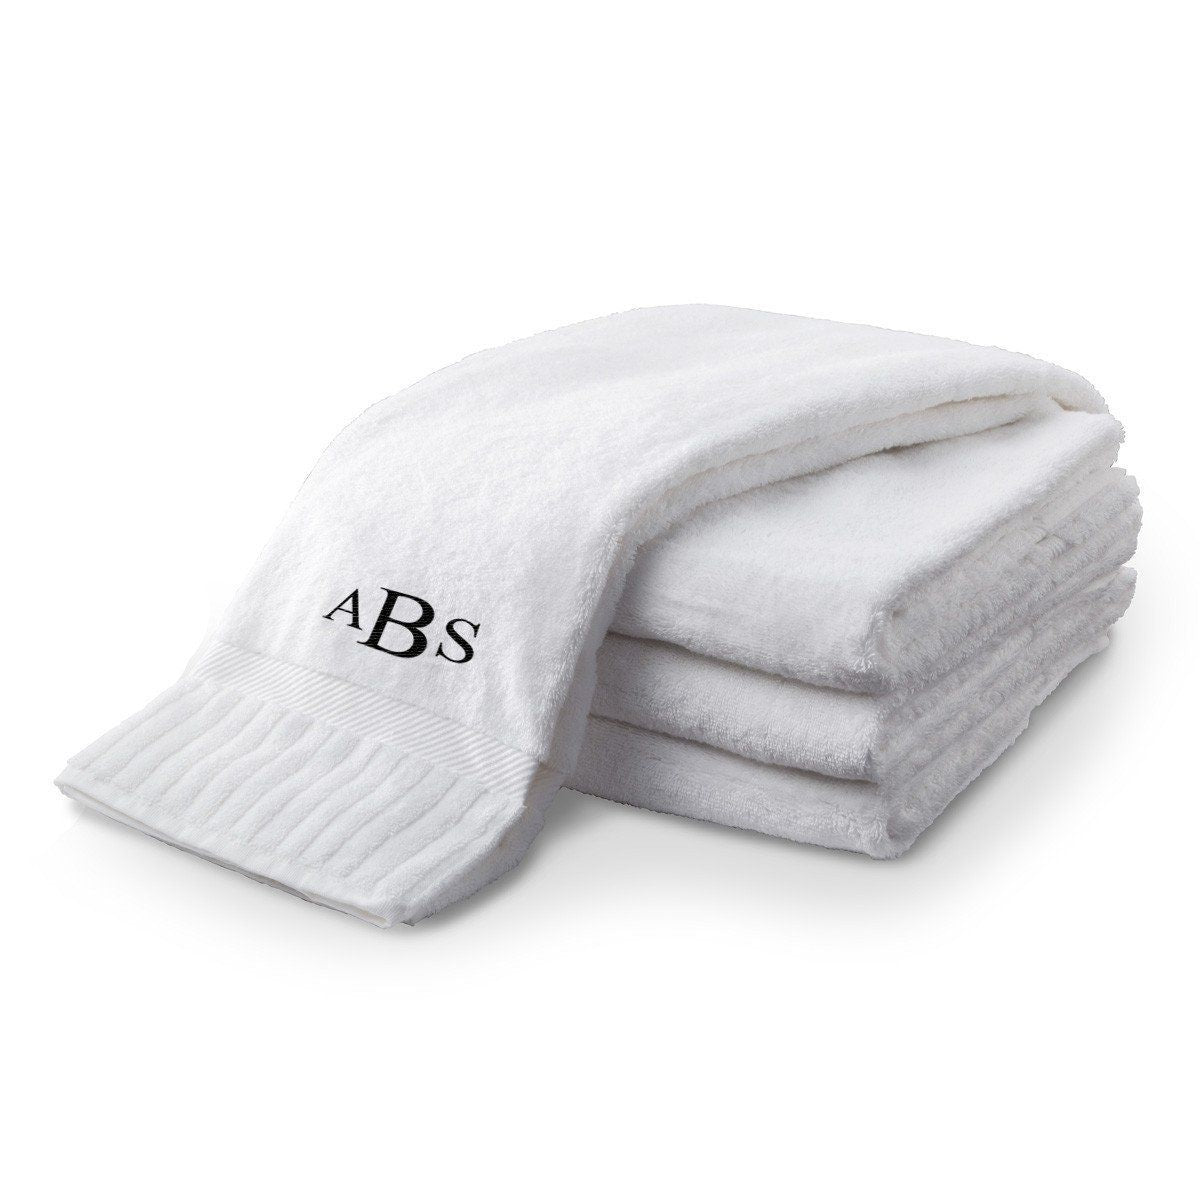 Personalized-Bath-Towels-Set-of-4